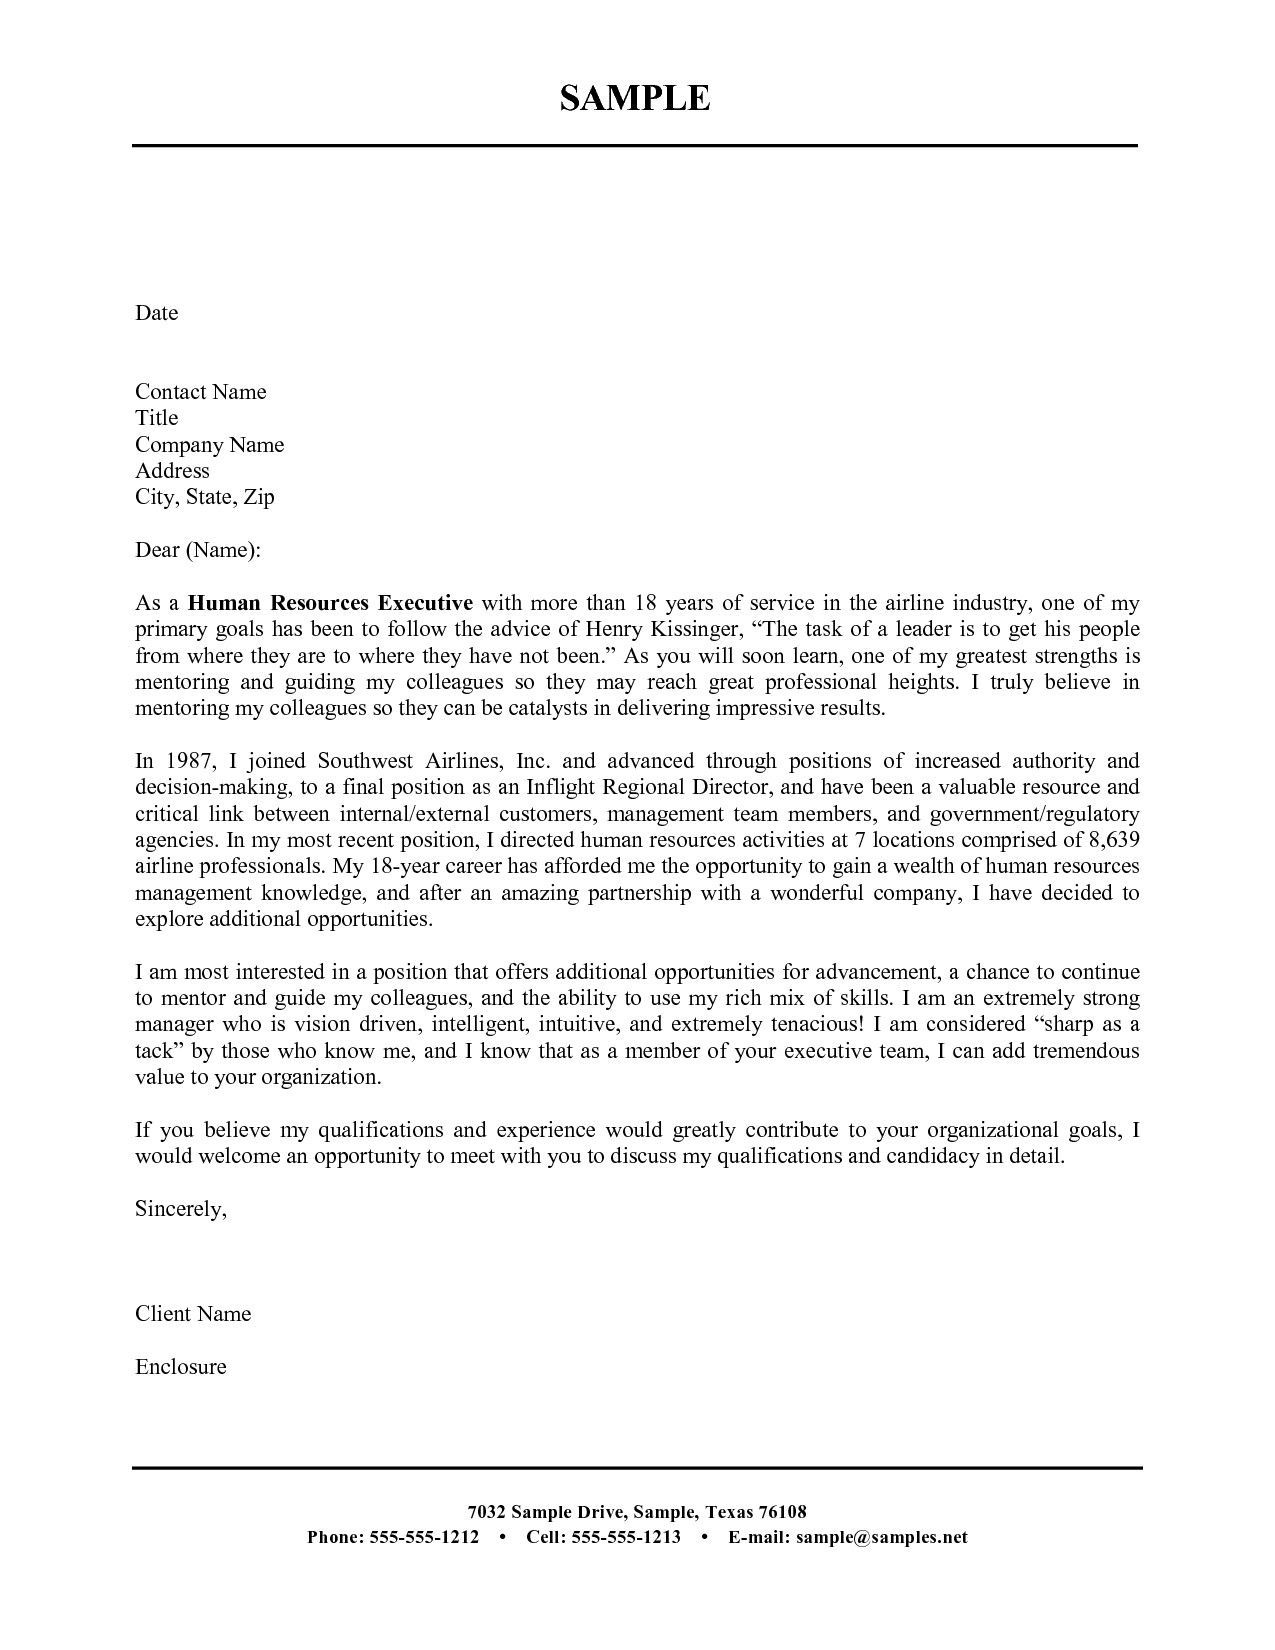 The Best Resume Cover Letter Cover Letter For Resume Resume Cover Letter Examples Cover Letter Template Free